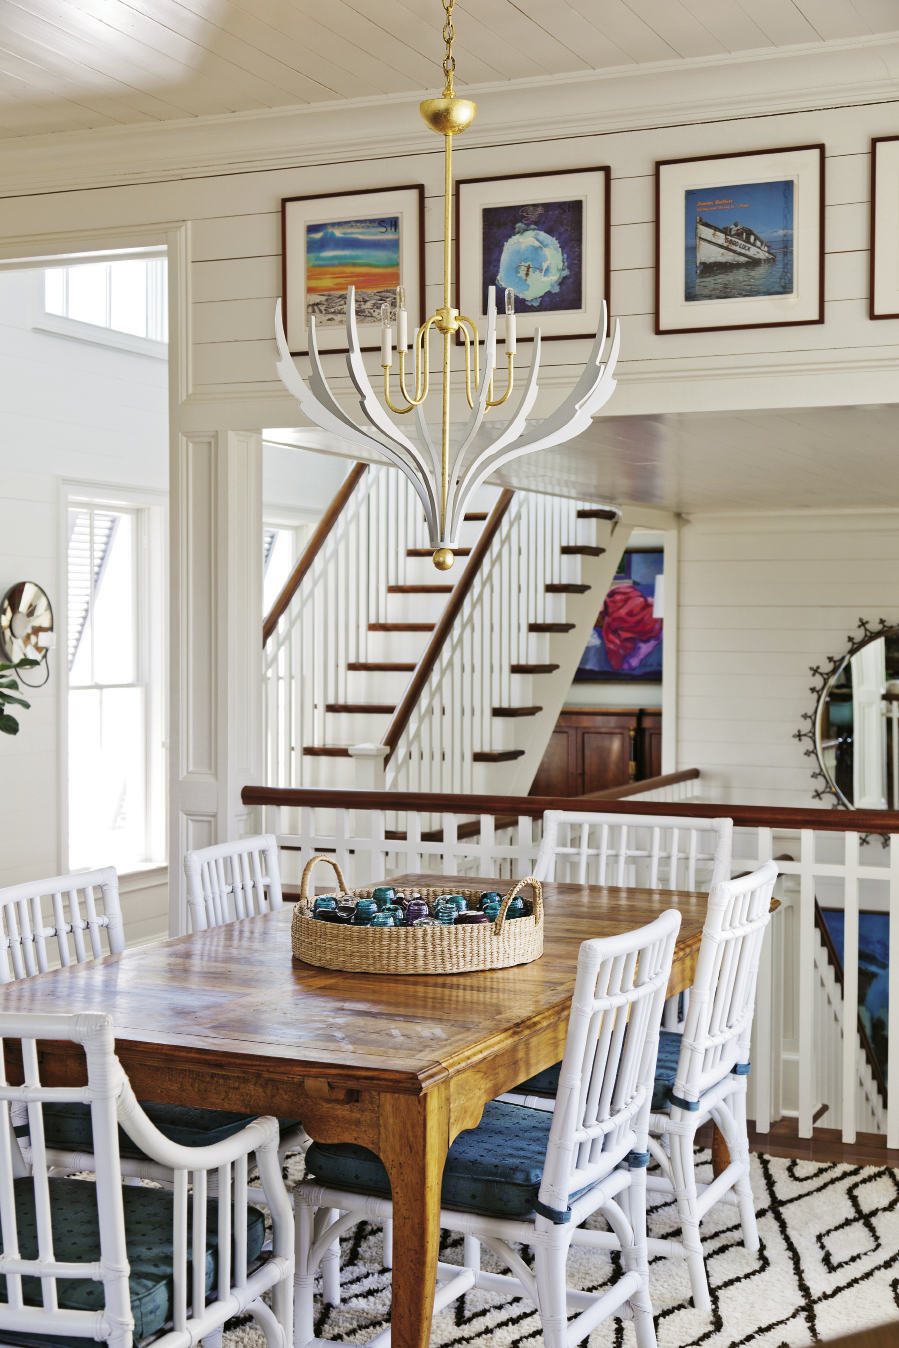 """""""With the upstairs being so open and loft-like, you have to be careful about the weight of the lights,"""" notes Lynne. """"You don't want these heavy, huge masses."""" A sculptural chandelier by local design firm Avrett does the trick, illuminating without interrupting flow."""